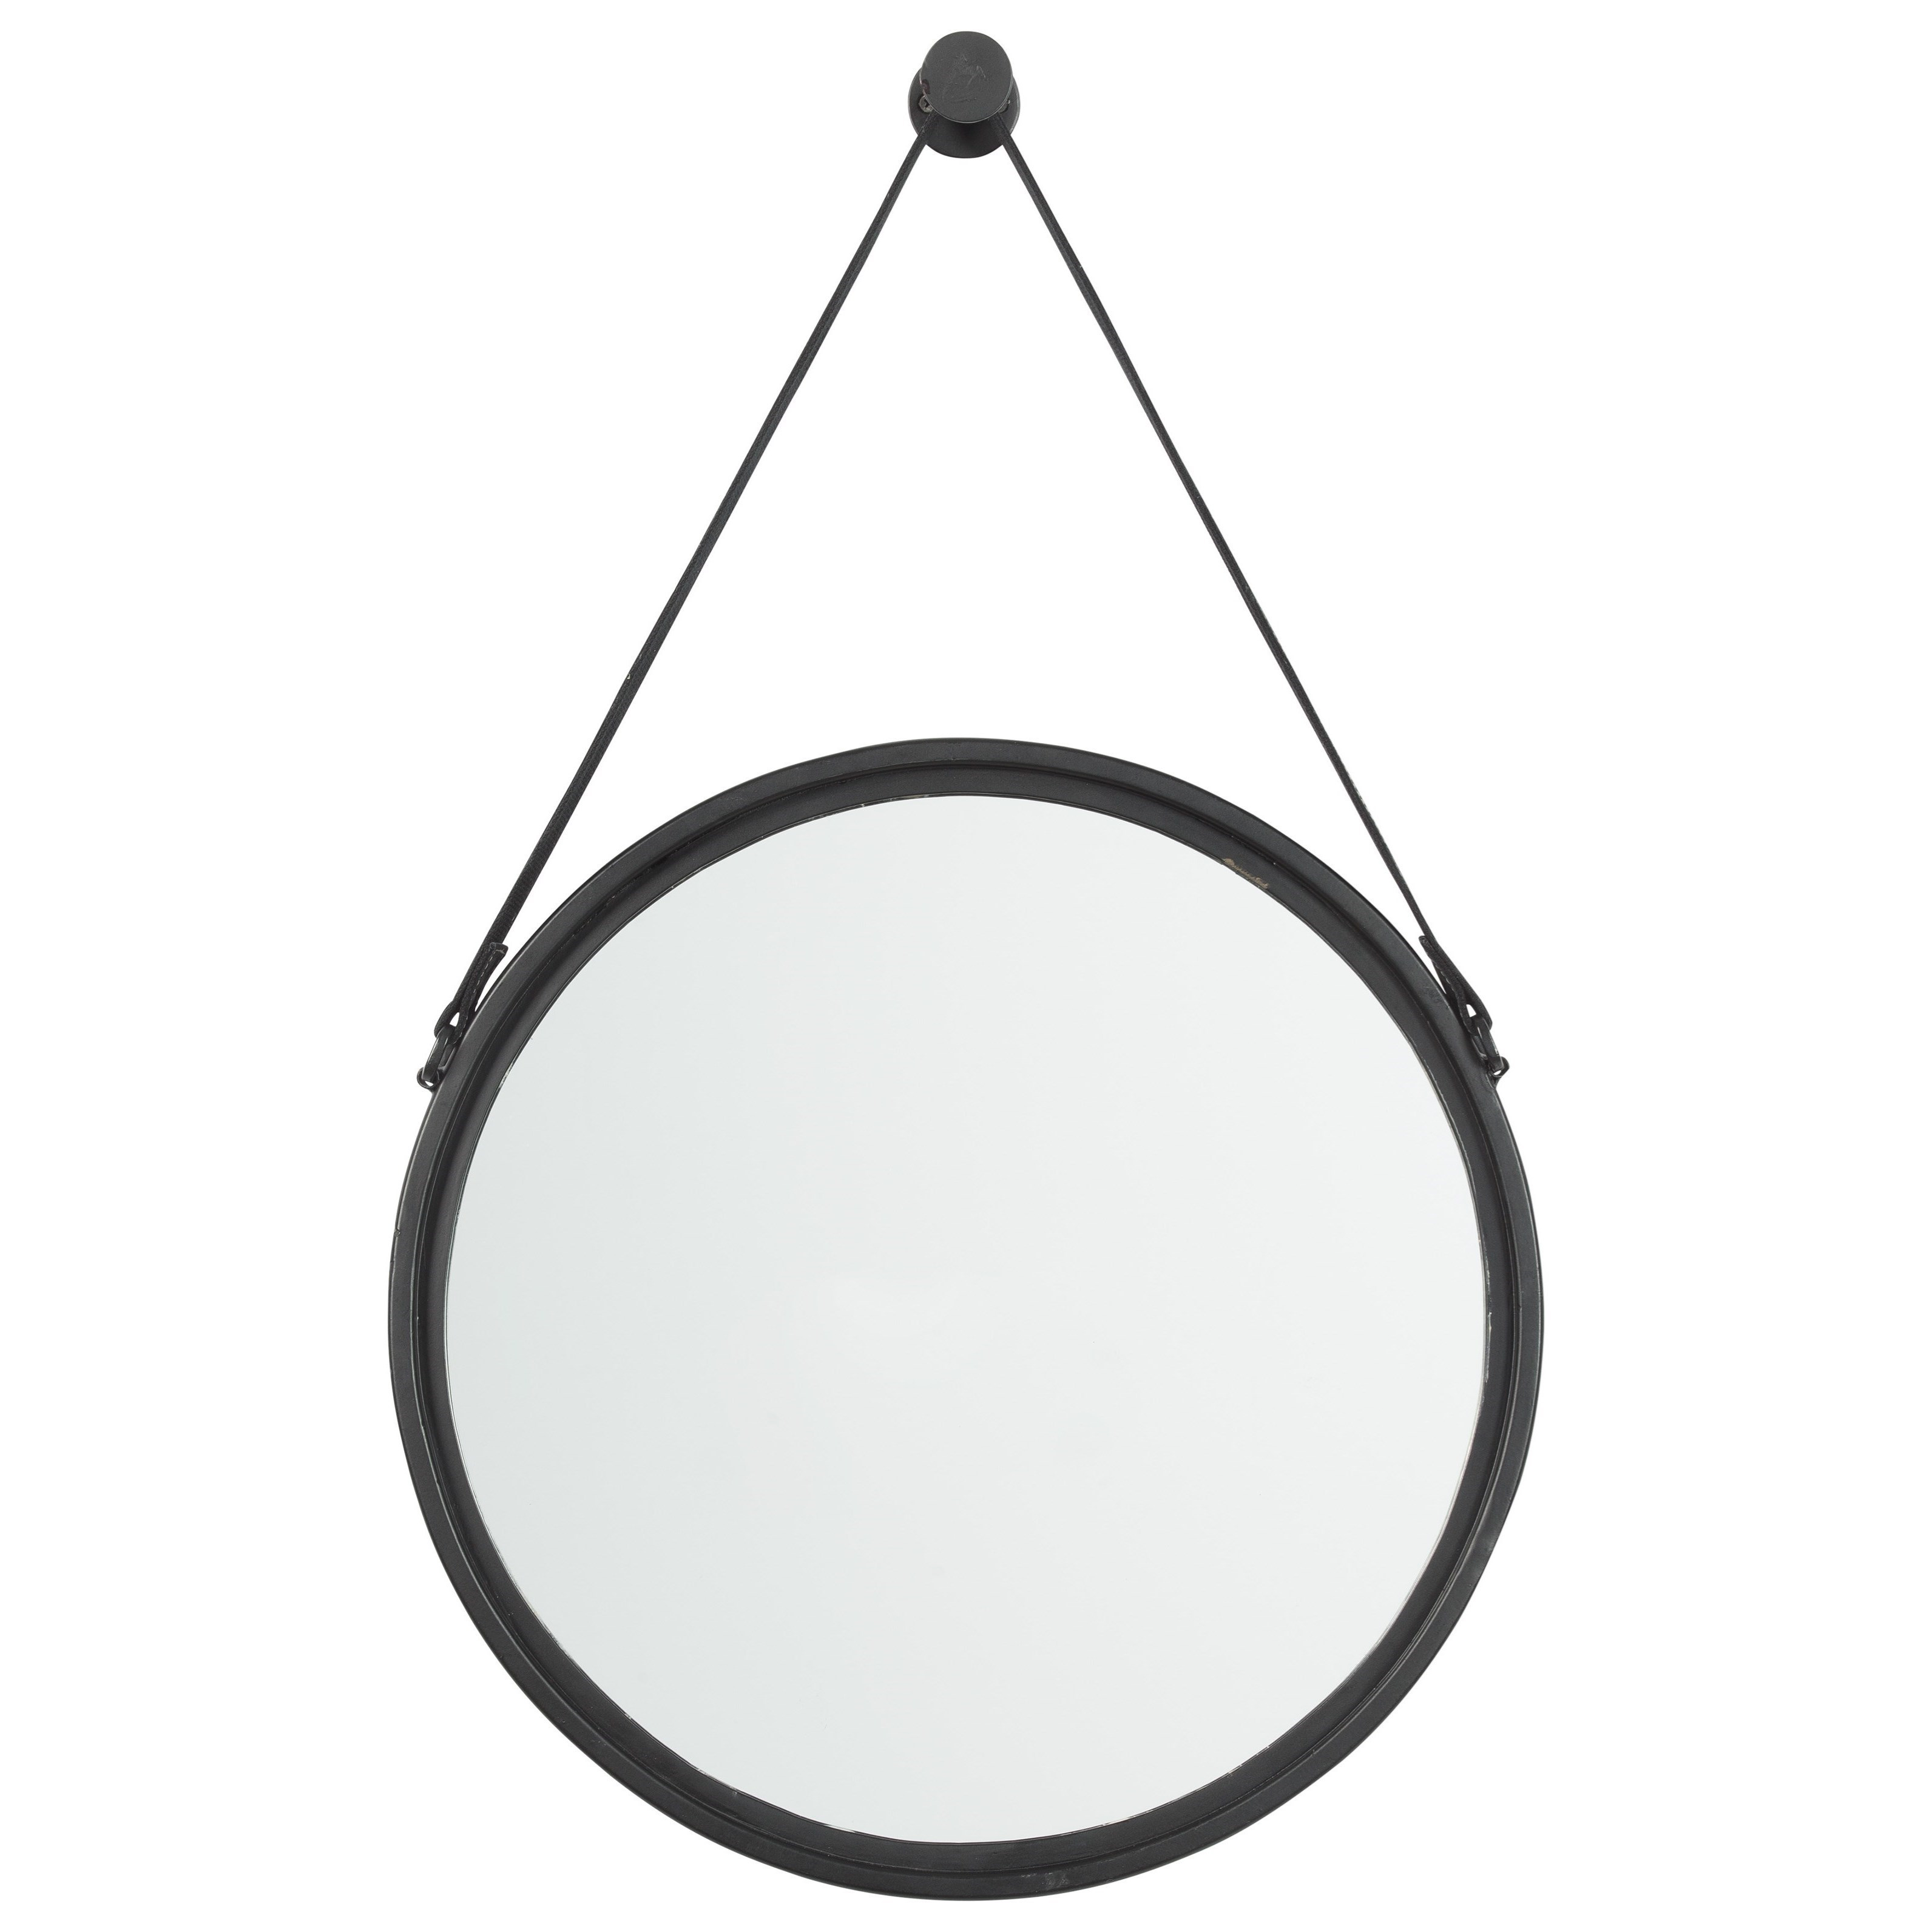 Dusan Black Accent Mirror with Leather Strap